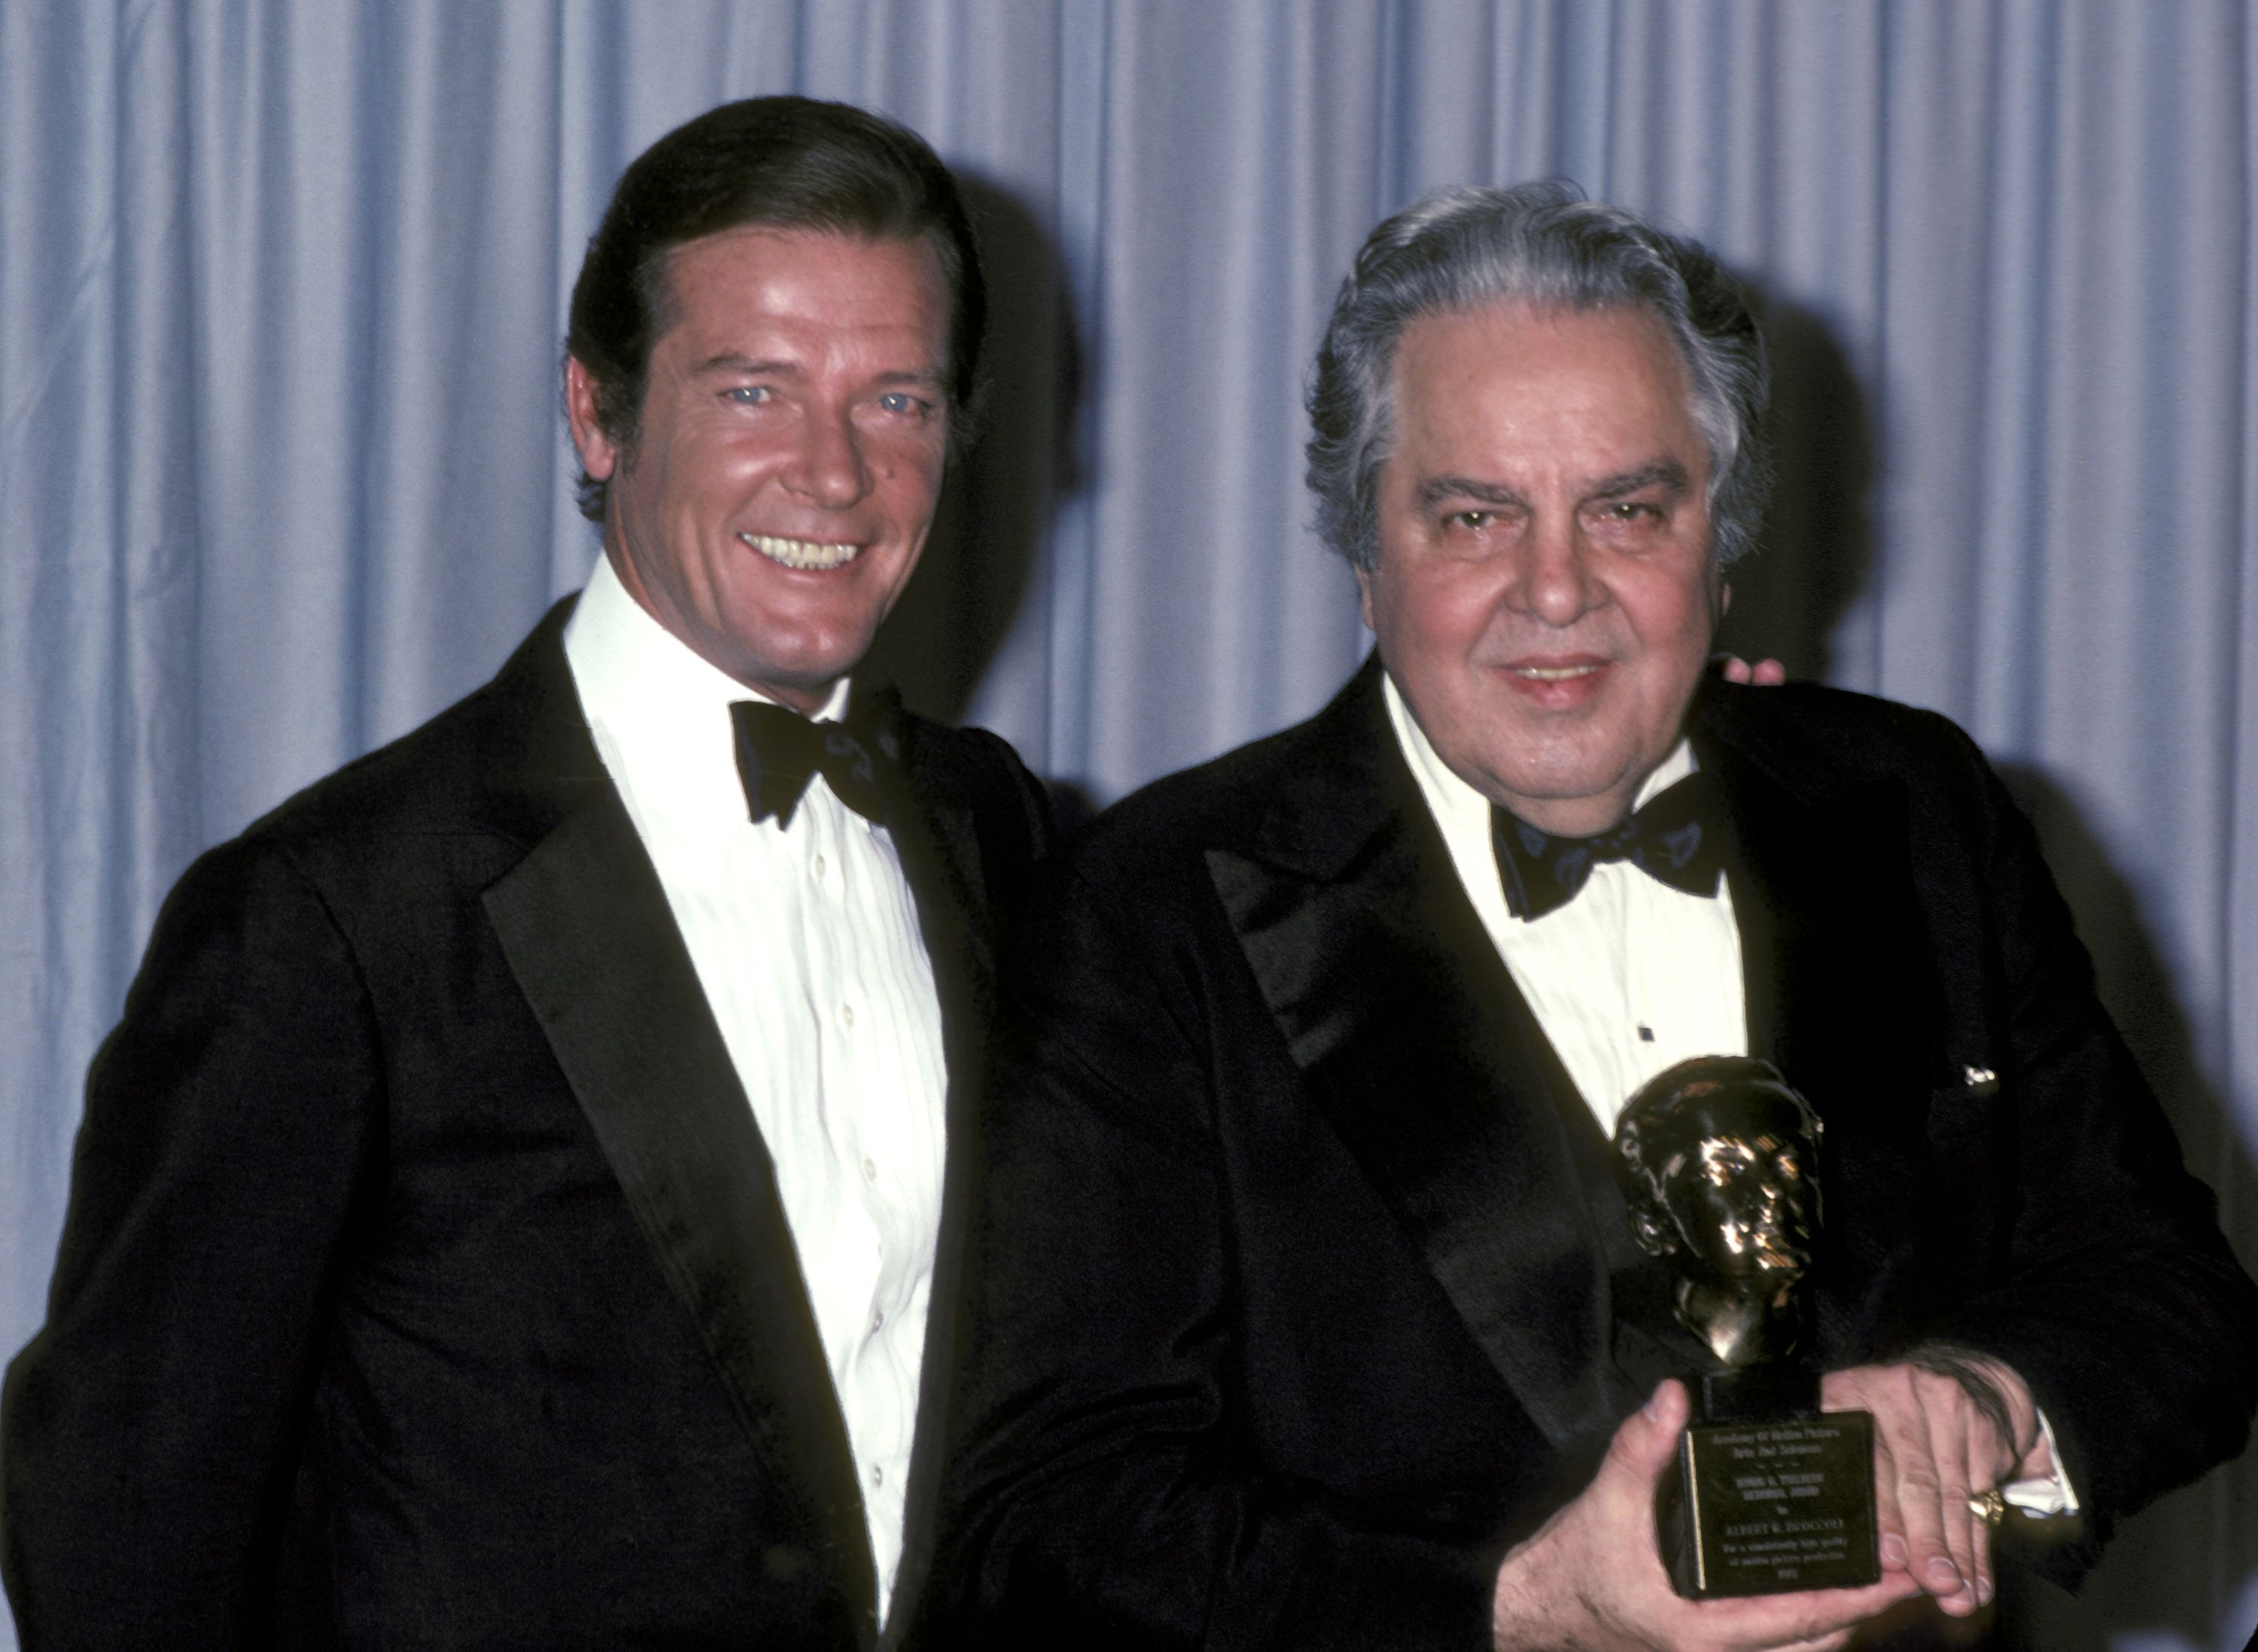 Roger Moore and Albert Broccoli at the 54th Annual Academy Awards in 1982. Broccoli had just received the Irving G. Thalberg Memorial Award, a top honor for film producers.